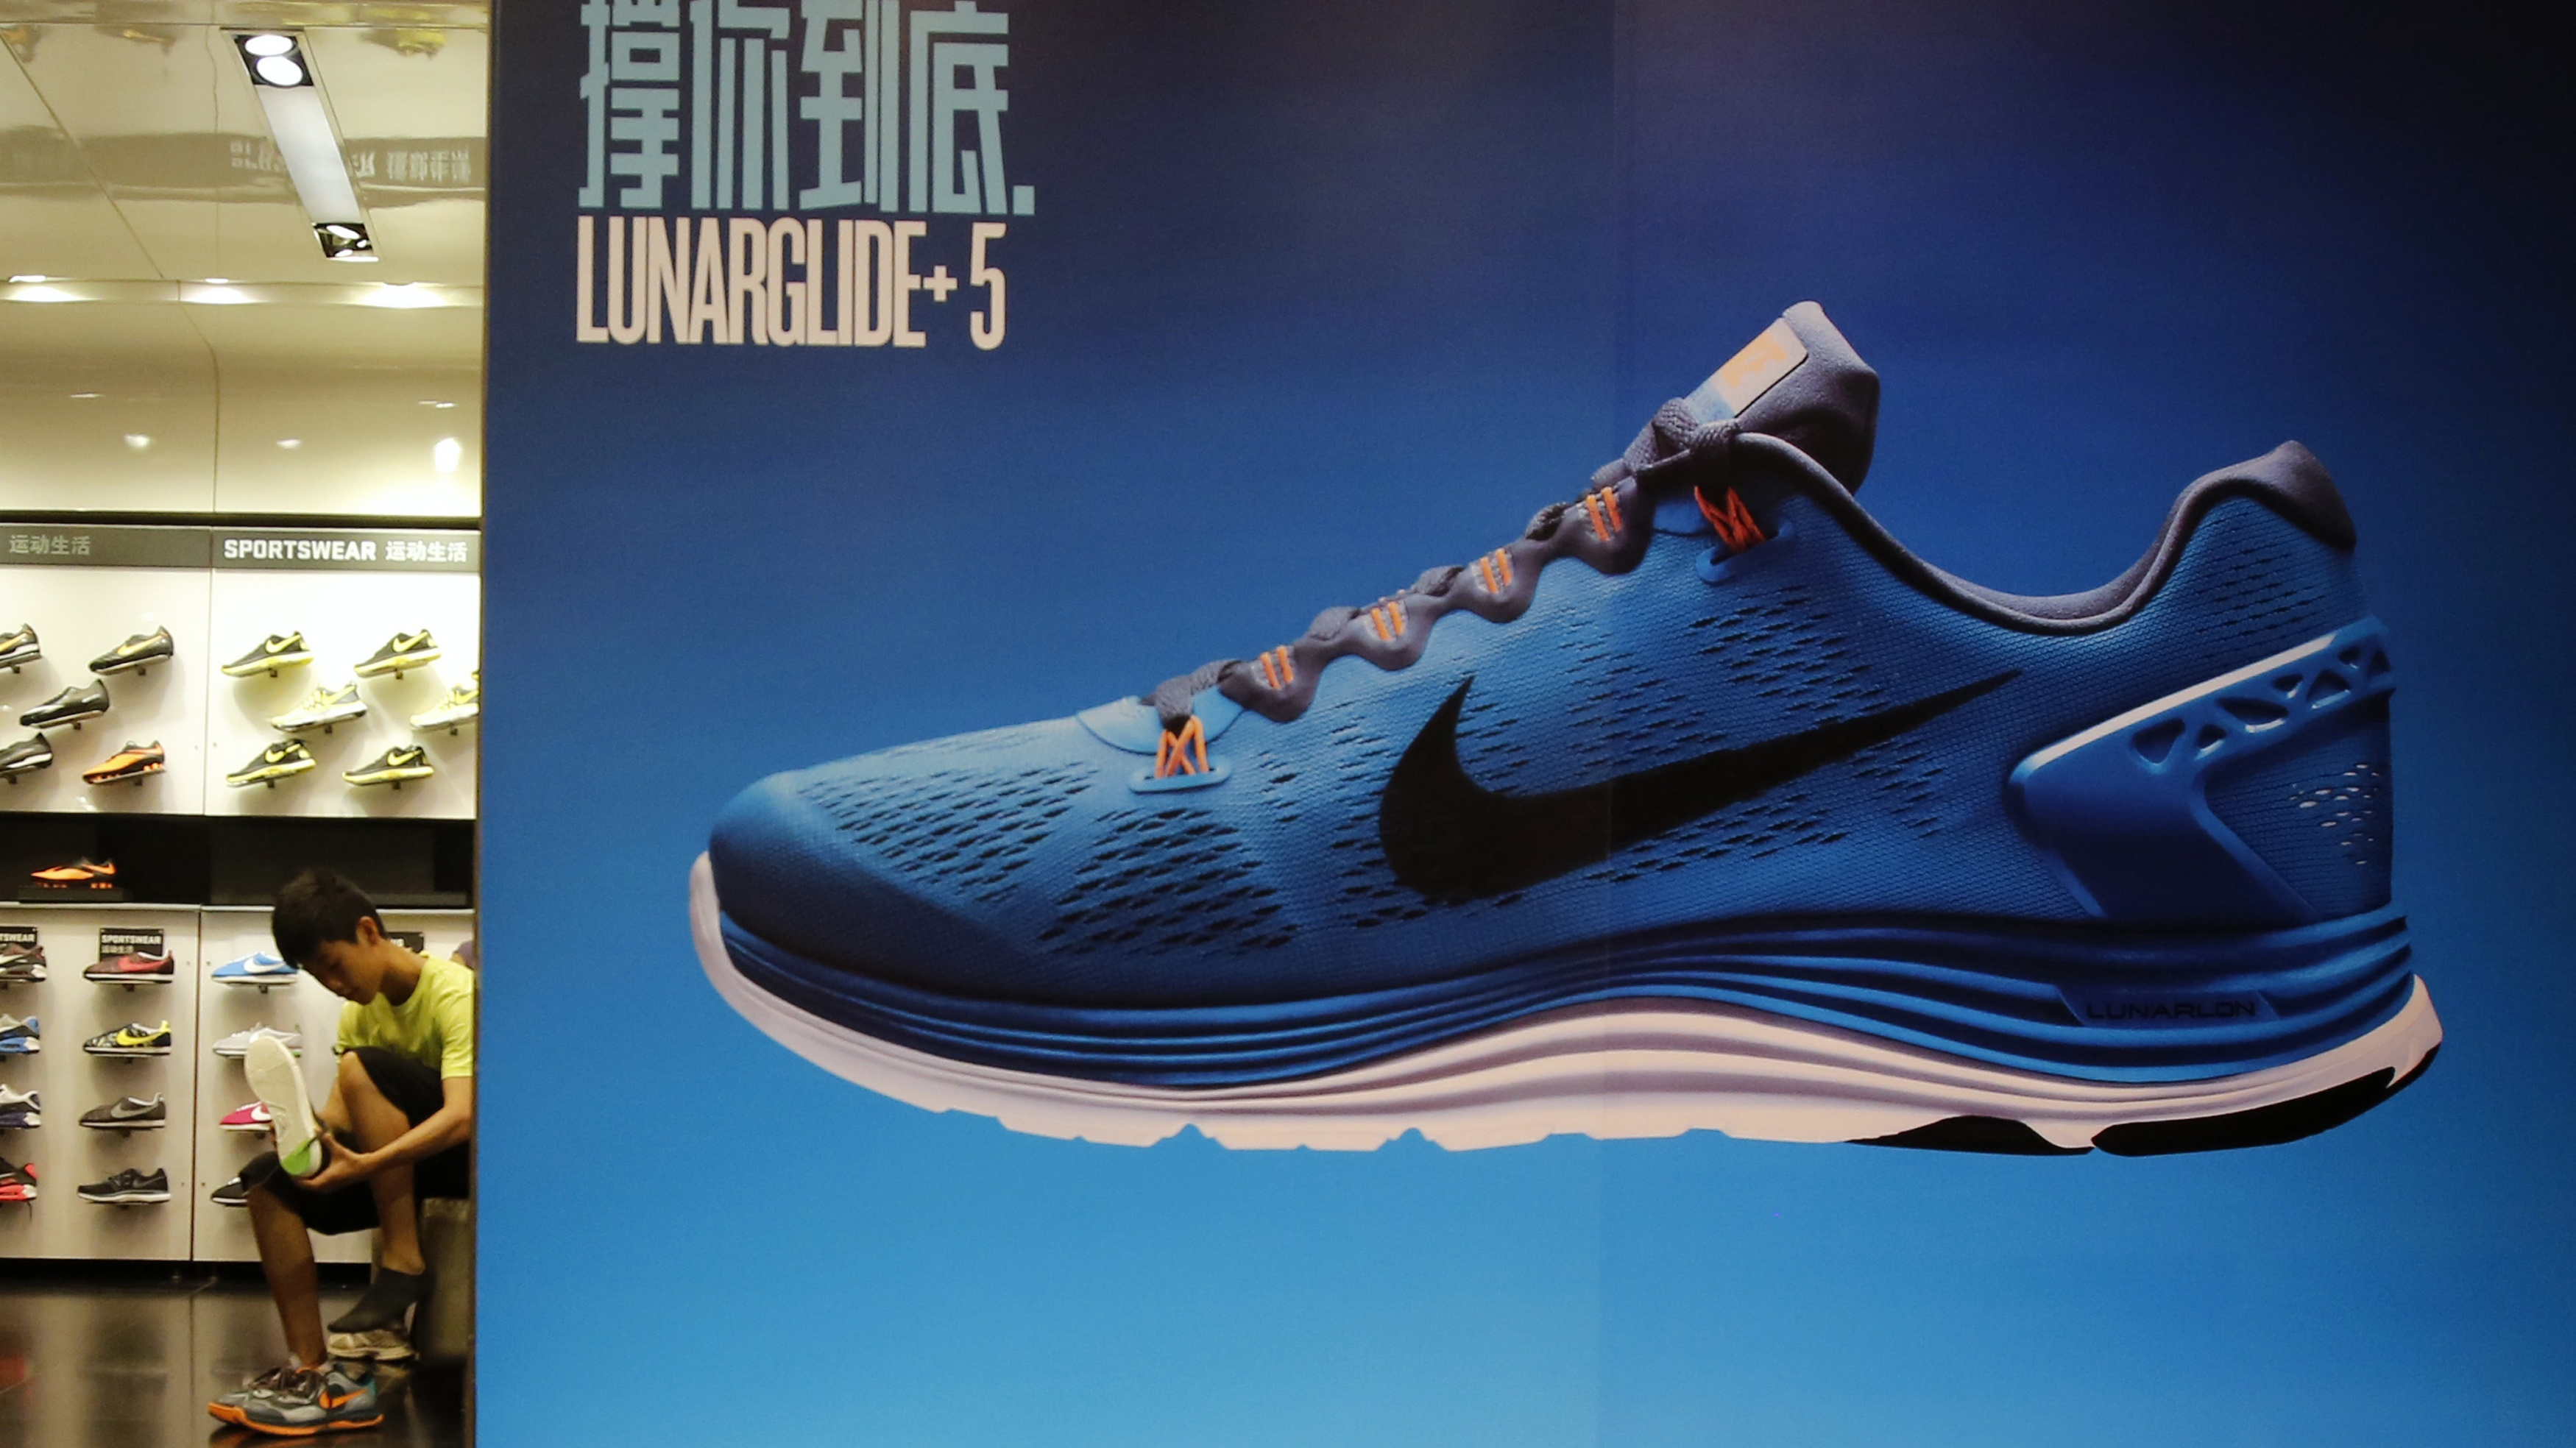 sportswear brands are looking to China